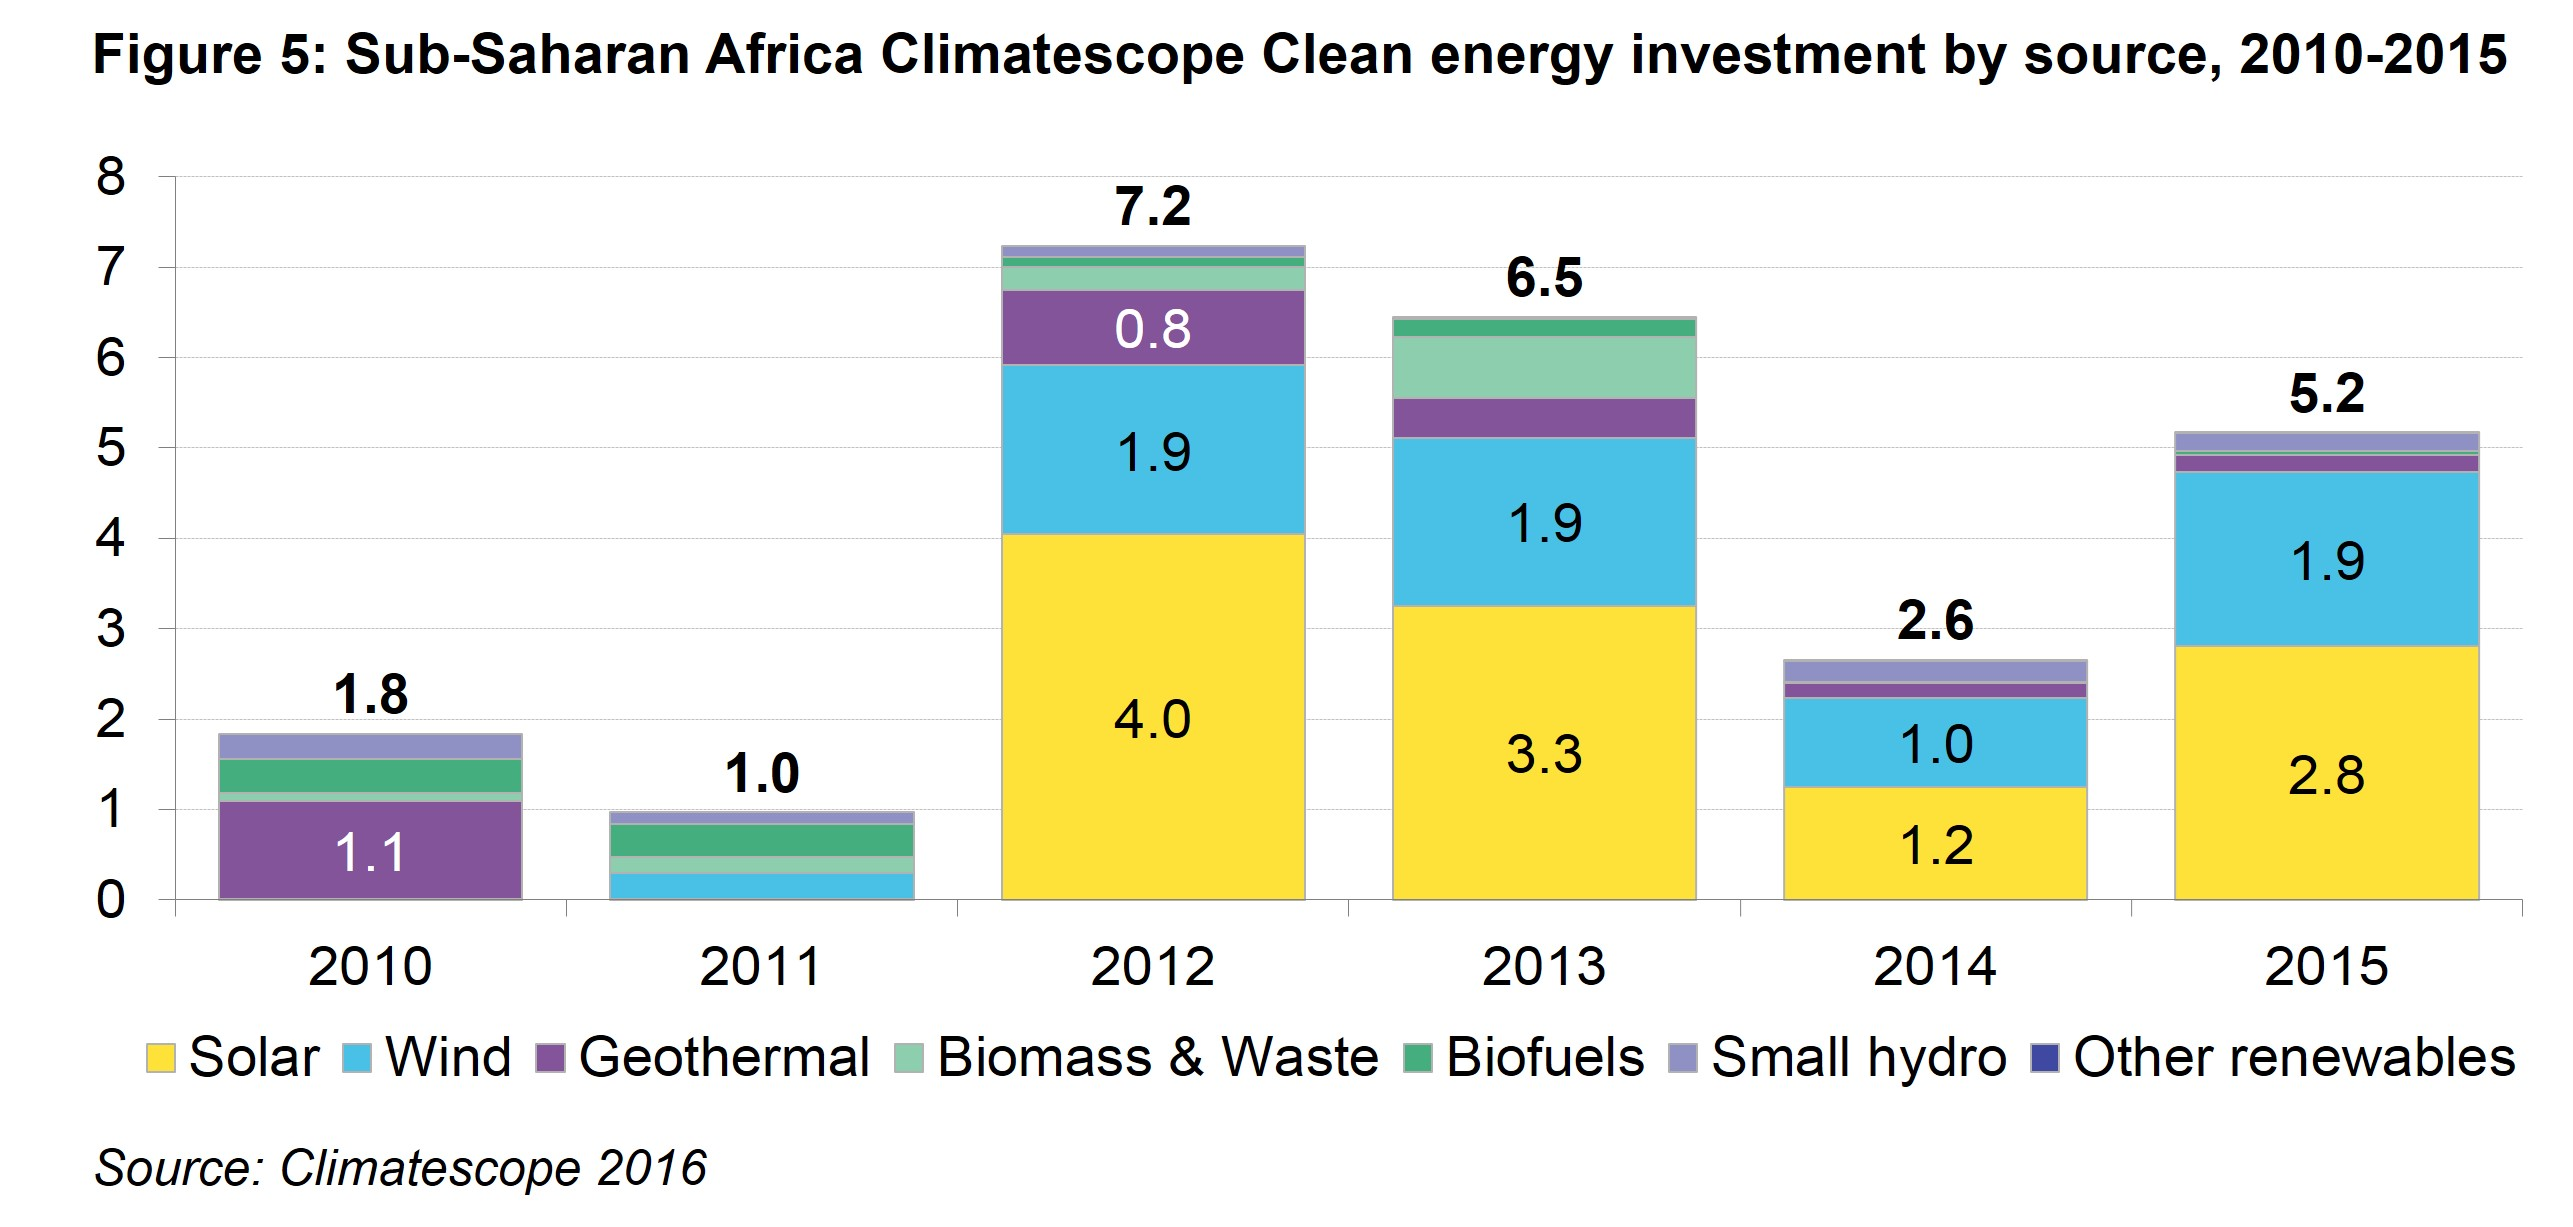 AM Fig 5 -  Sub-Saharan Africa Climatescope Clean energy investment by source, 2010 - 2015